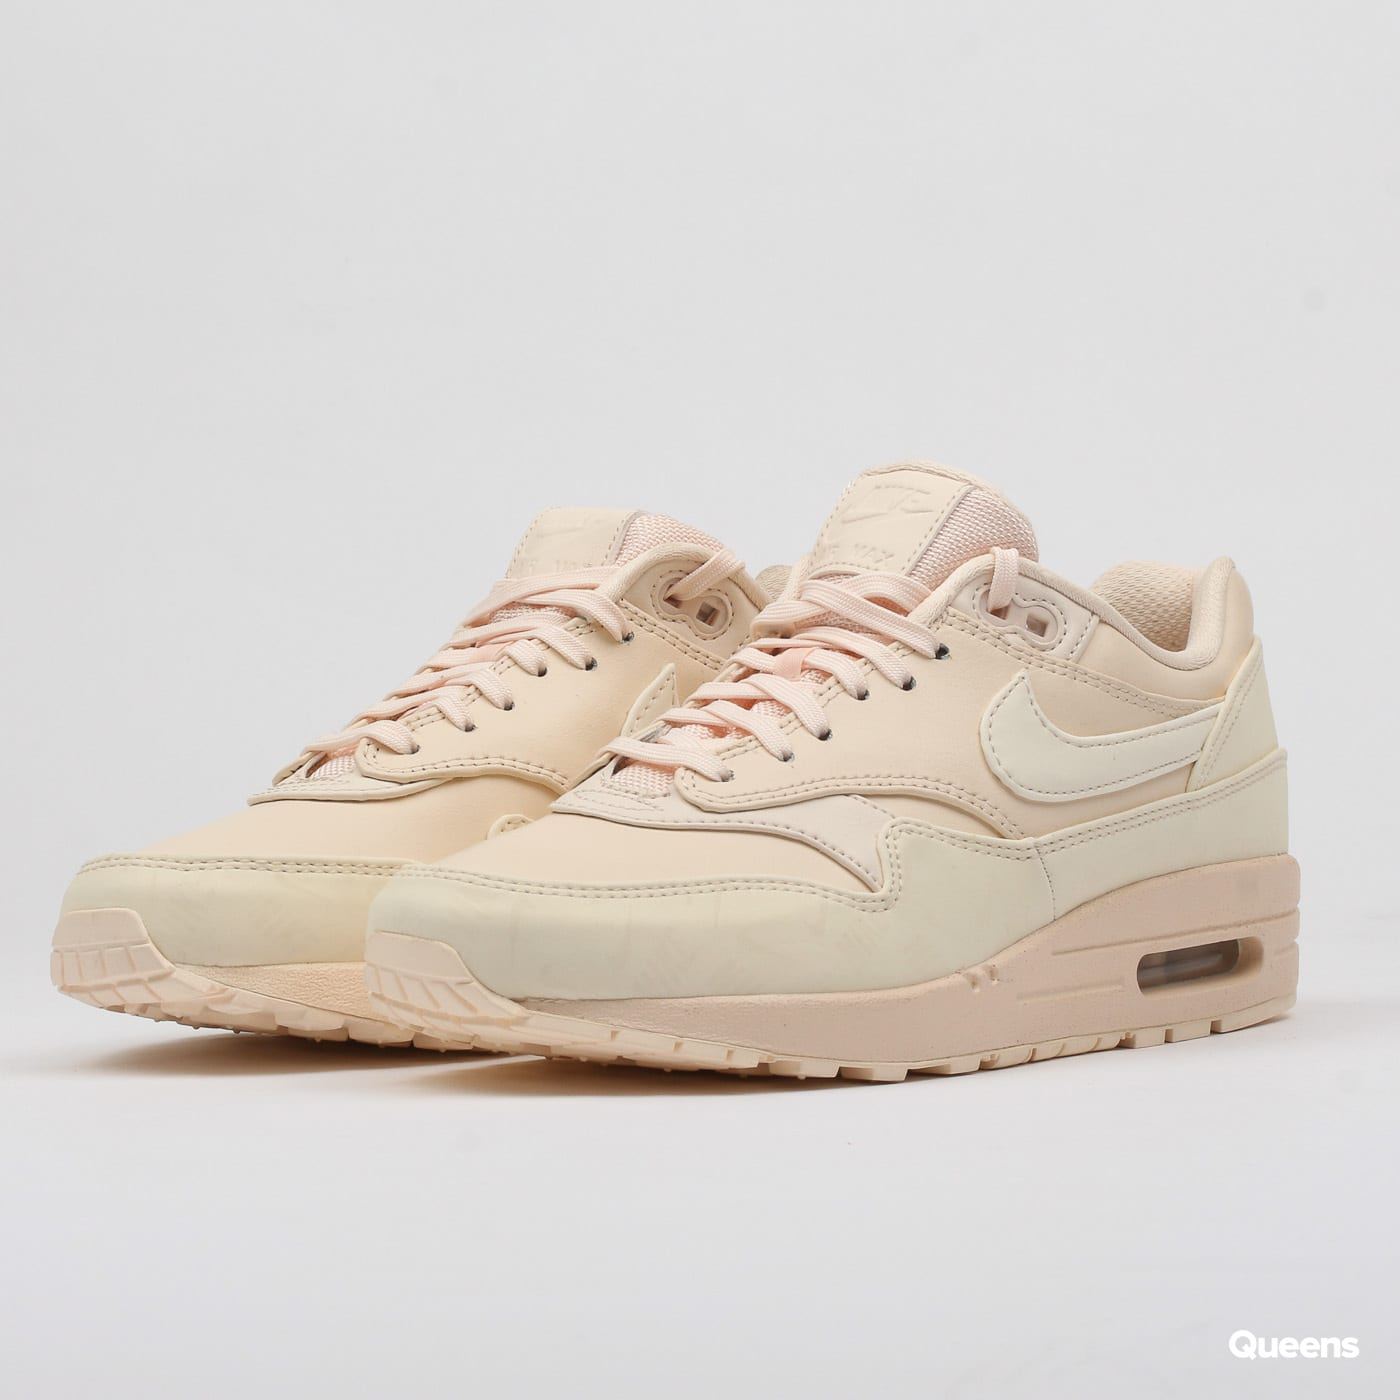 cb48a33c6f Nike WMNS Air Max 1 LX guava ice / guava ice - guava ice (917691-801) –  Queens 💚